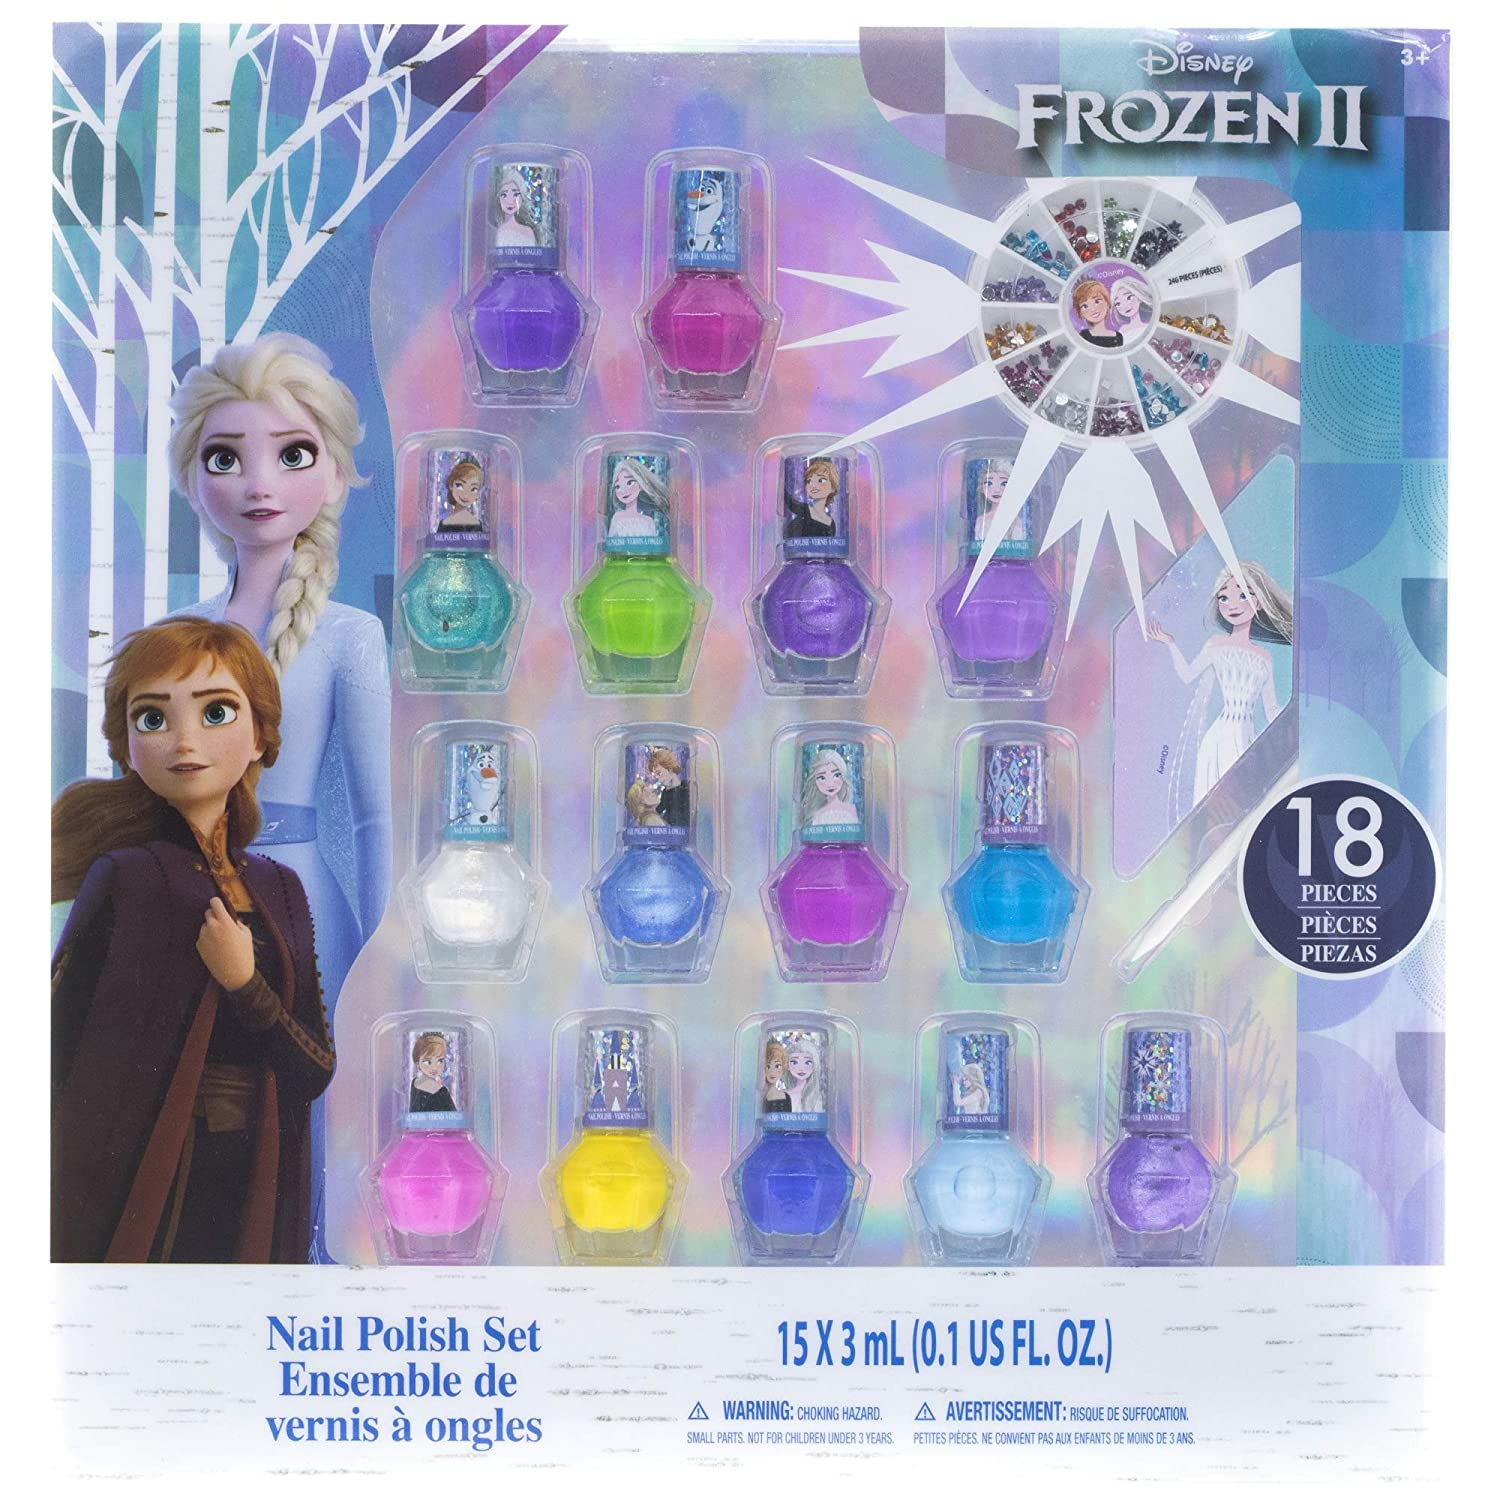 Townley Girl Frozen 2 Non-Toxic Peel-Off Nail Polish Set for Girls, Glittery and Opaque Colors, with Nail Gems, Ages 3+, for Parties, Sleepovers and Makeovers, 18 Pcs